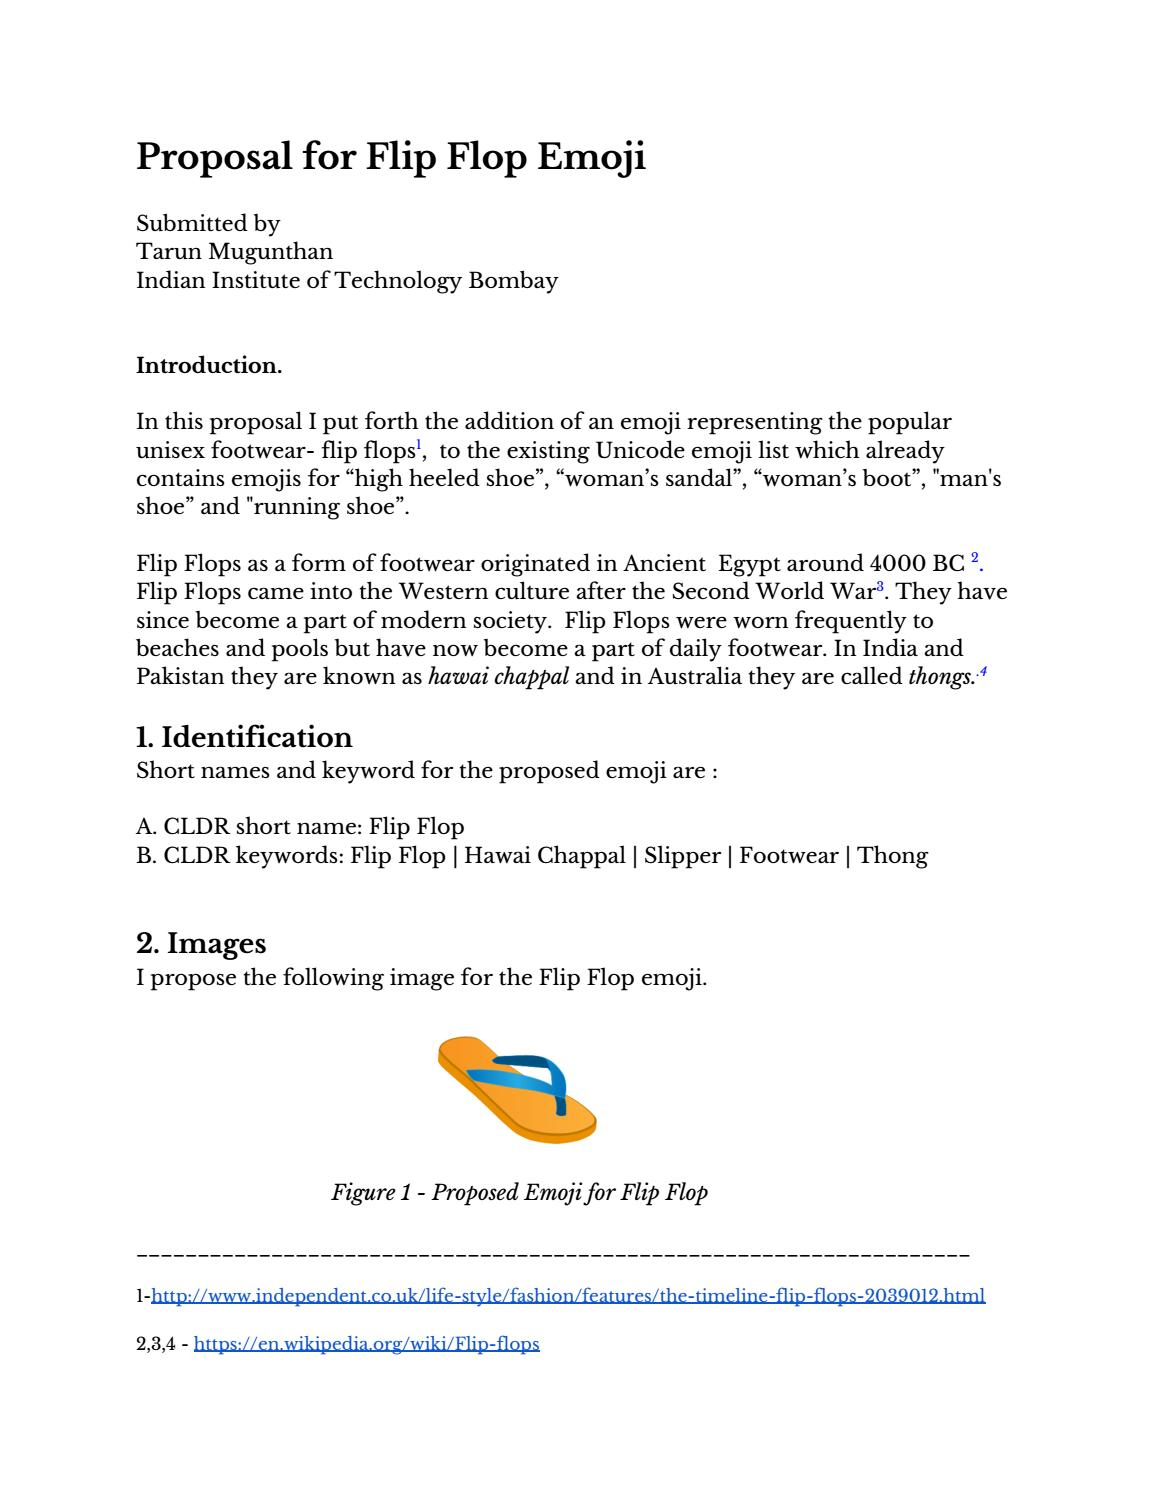 Flipflop emoji proposal by Tarun Mugunthan - issuu